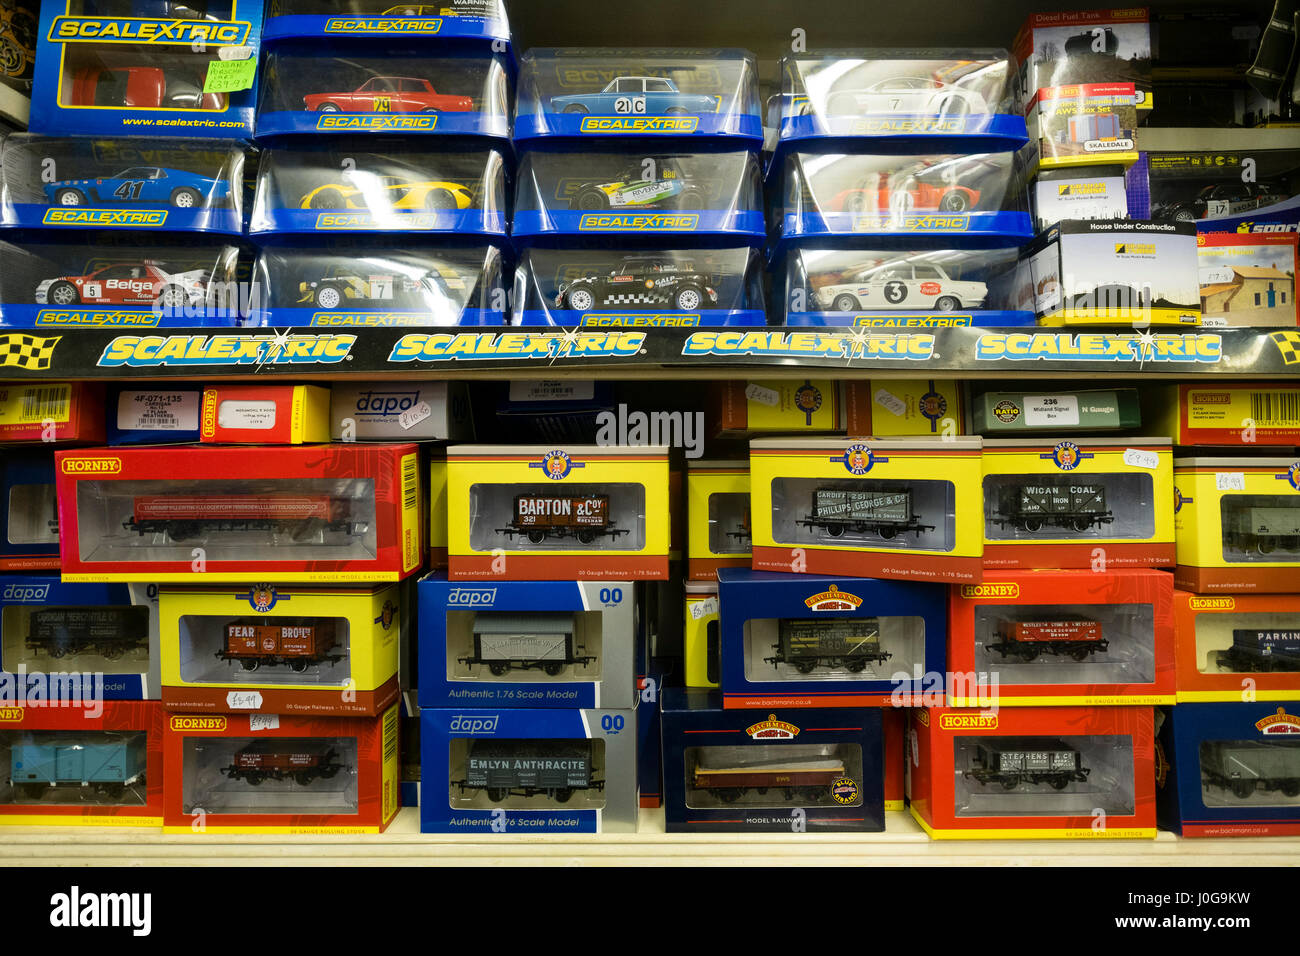 Boxes of Hornby model trains  and Scalextric on sale in the   'The Albatross' traditional old-fashioned - Stock Image